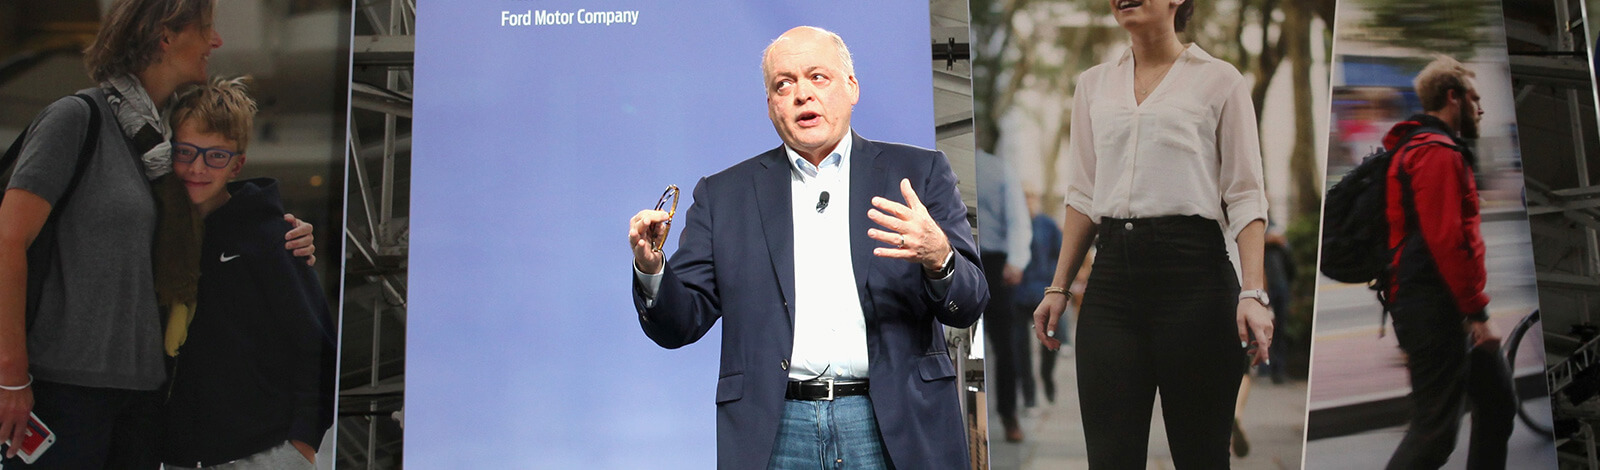 Ford shakes up senior management team for Ford motor company dearborn mi human resources